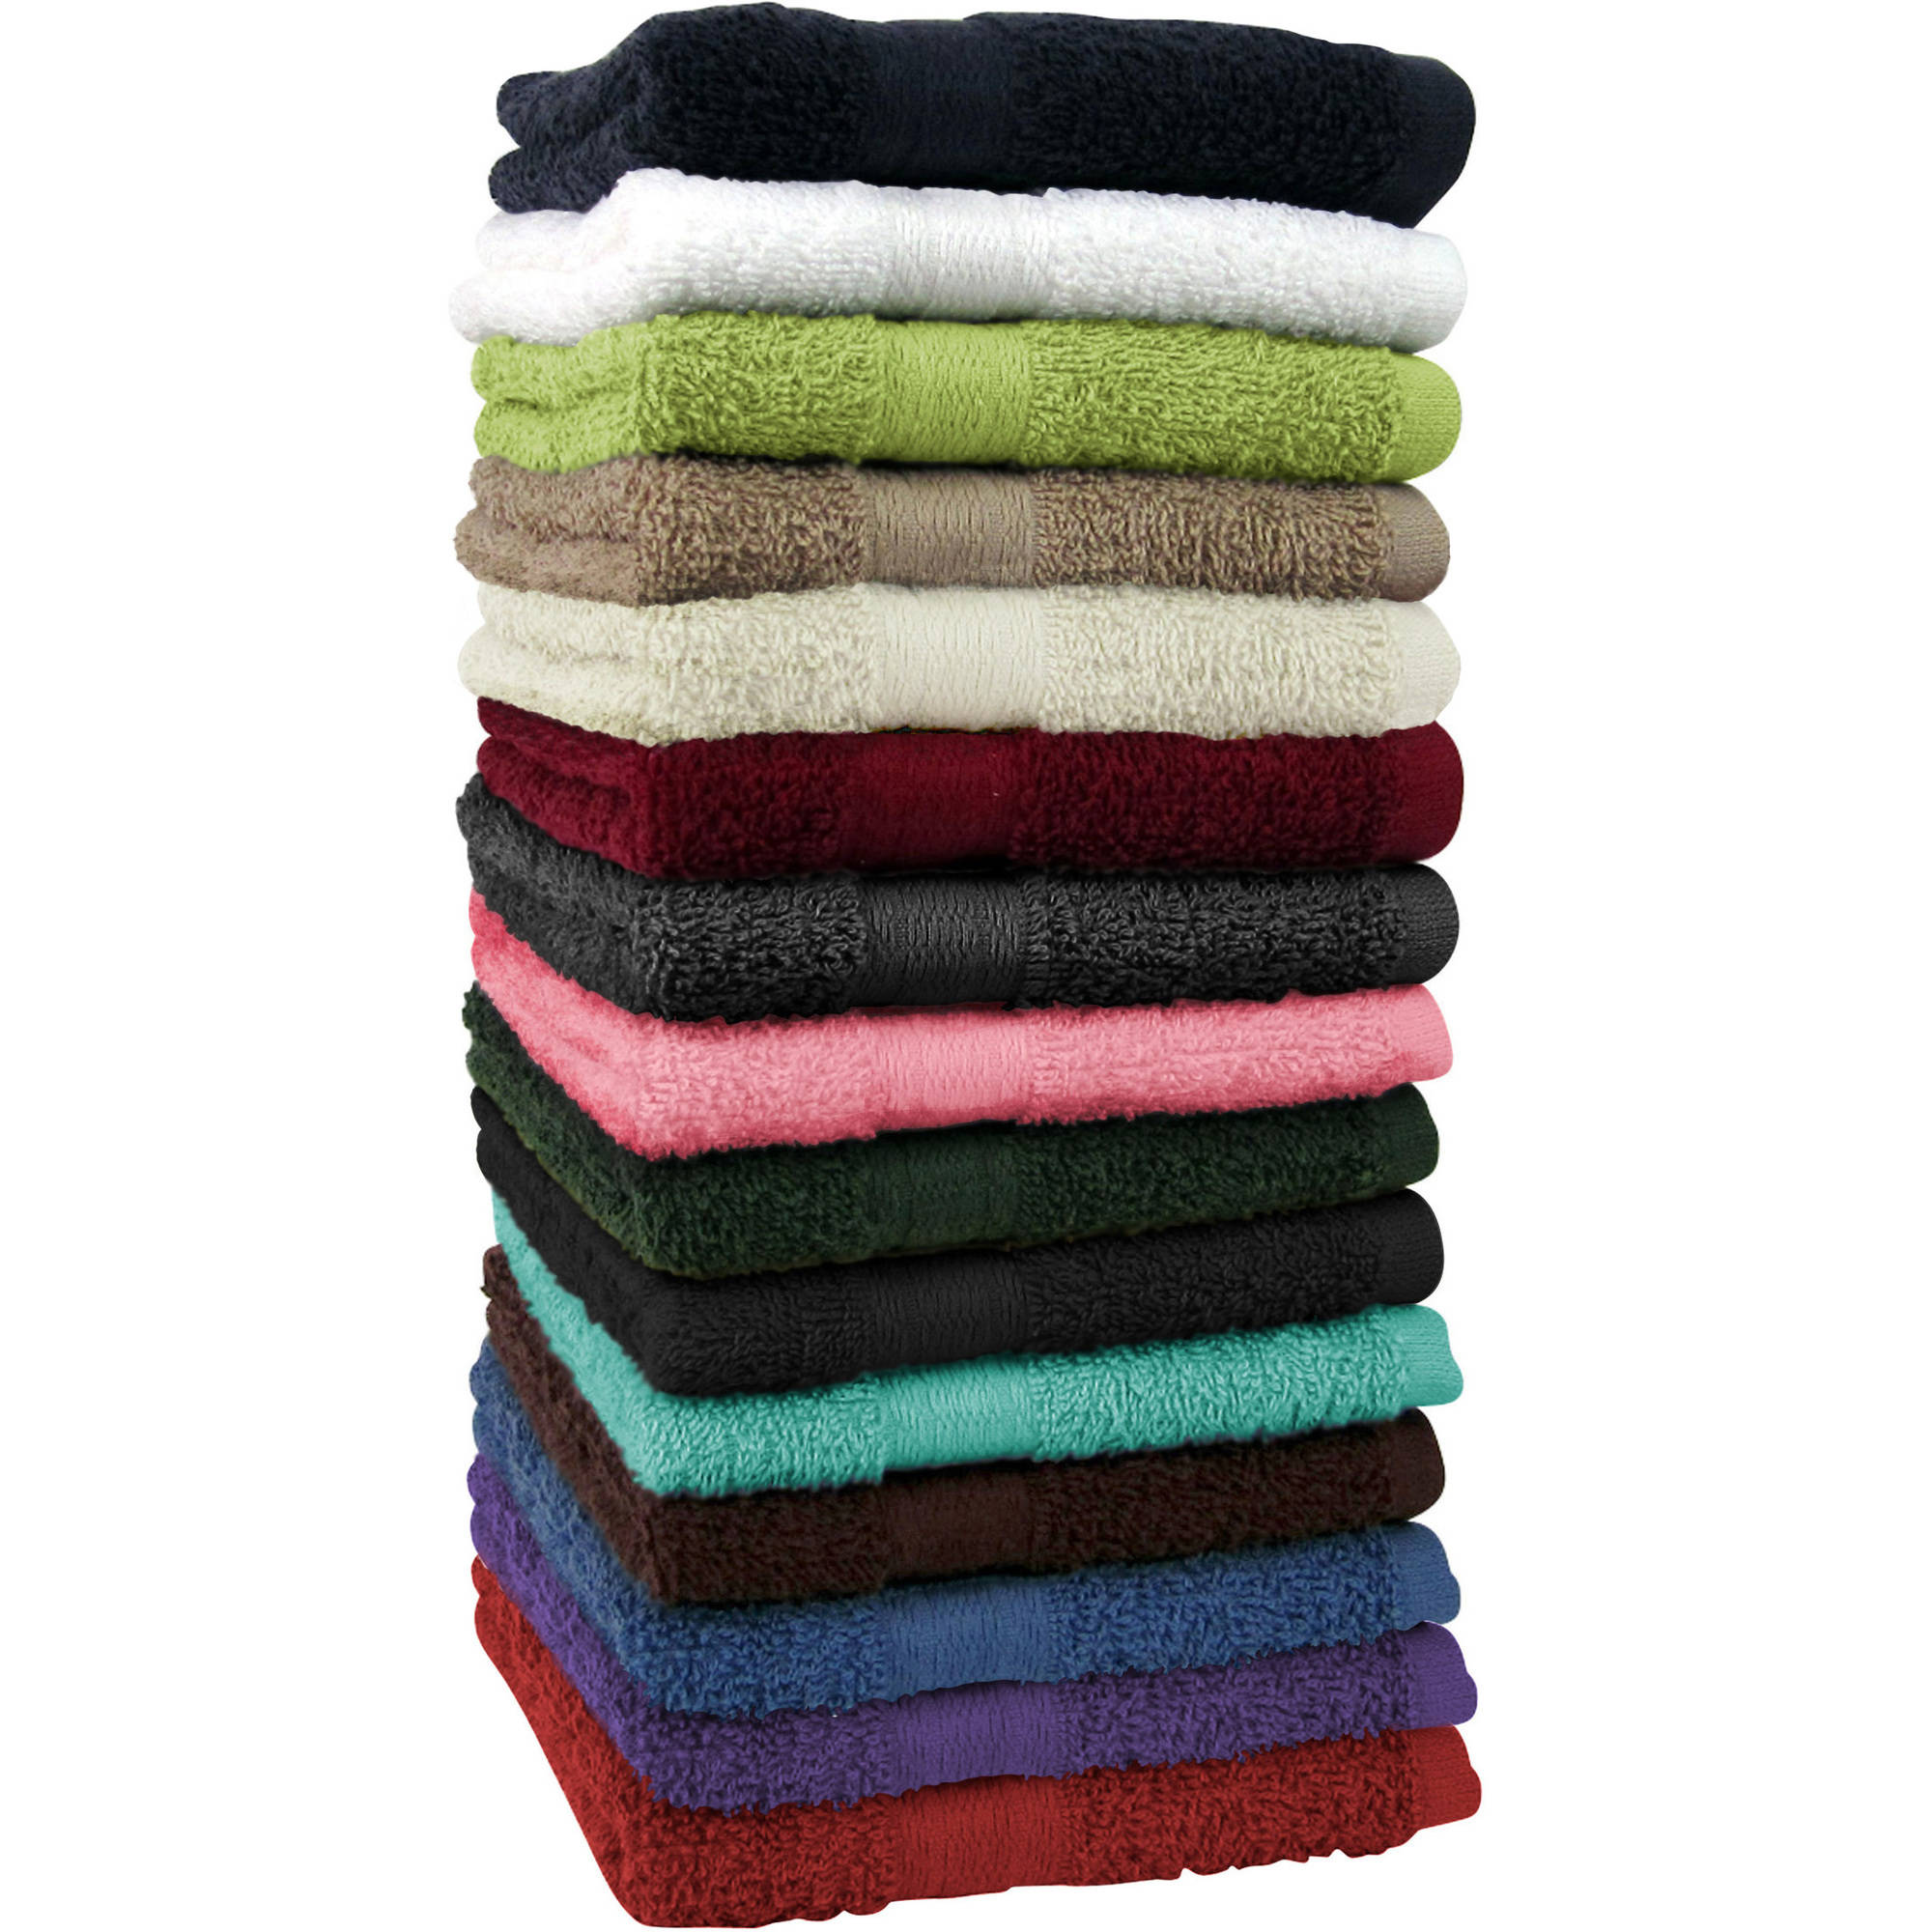 Mainstays Basic Bath Towel Collection Walmartcom